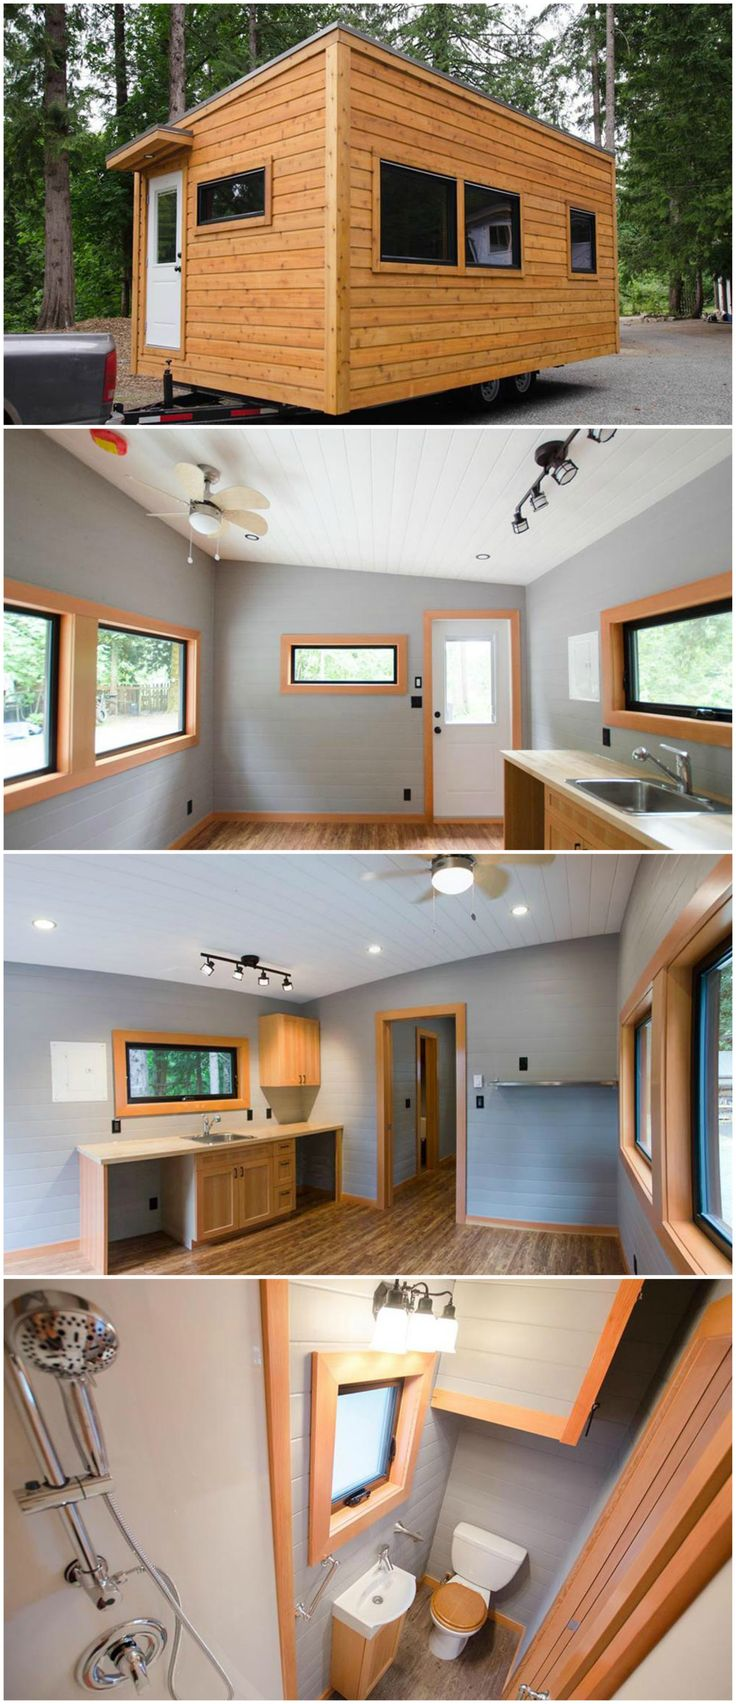 Ptarmigan is a fantastic tiny house designed and built by Rewild Homes.  With its custom birch cabinetry, fir trim, and modern black fixtures, the Ptarmigan offers a luxurious self-contained suite, perfect for a retirement home or rental property.  The kitchen has soft-closing drawers and cabinets throughout, a combo washer/dryer, and an under counter refrigerator. The ample counter space has room for an electric cooktop.